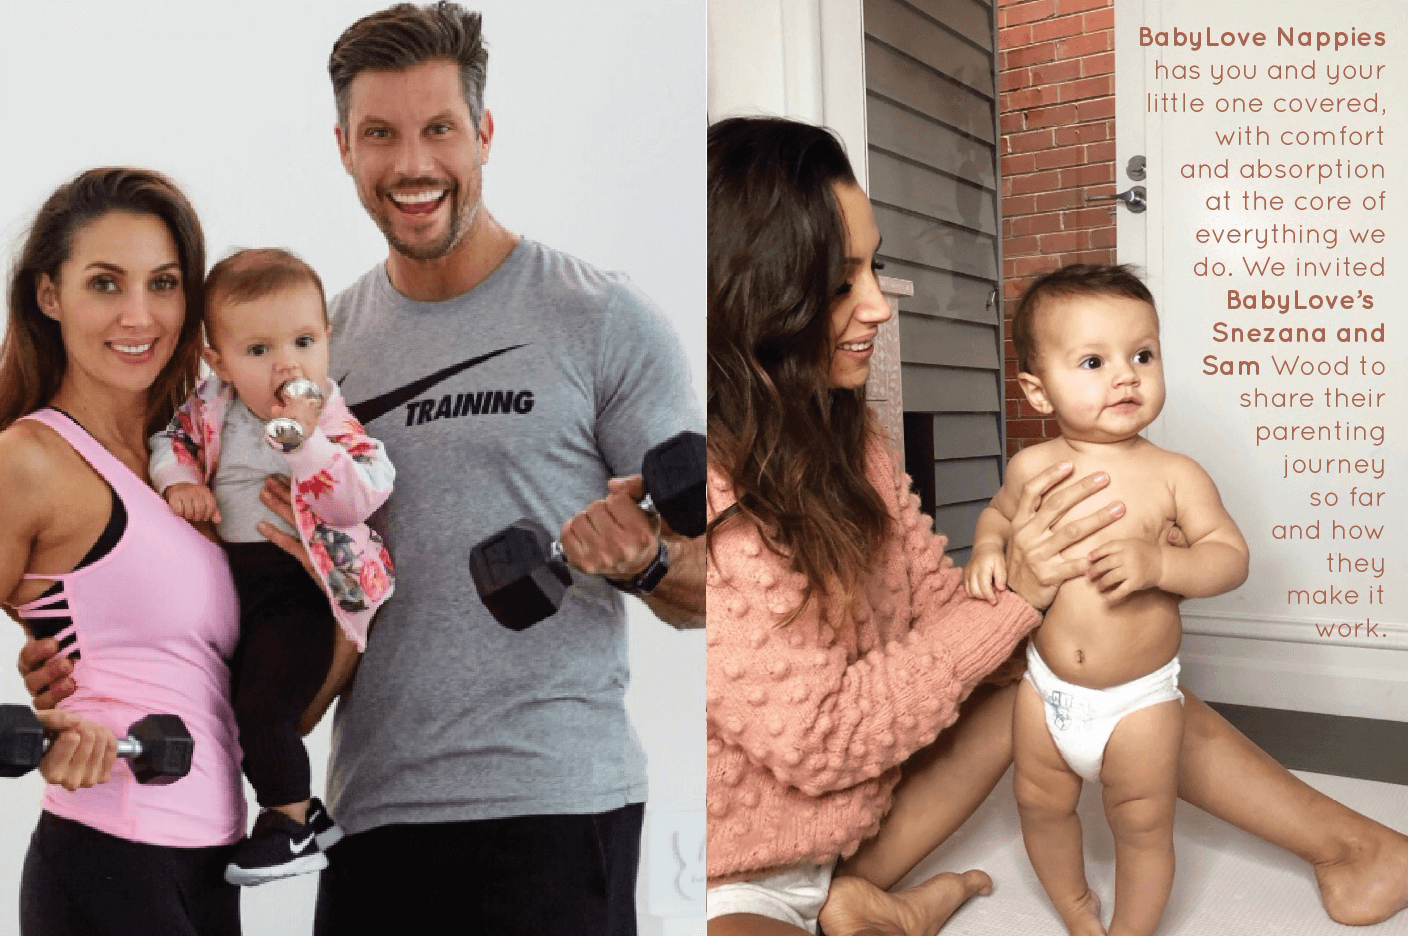 BabyLove's Snezana and Sam Wood's parenting journey